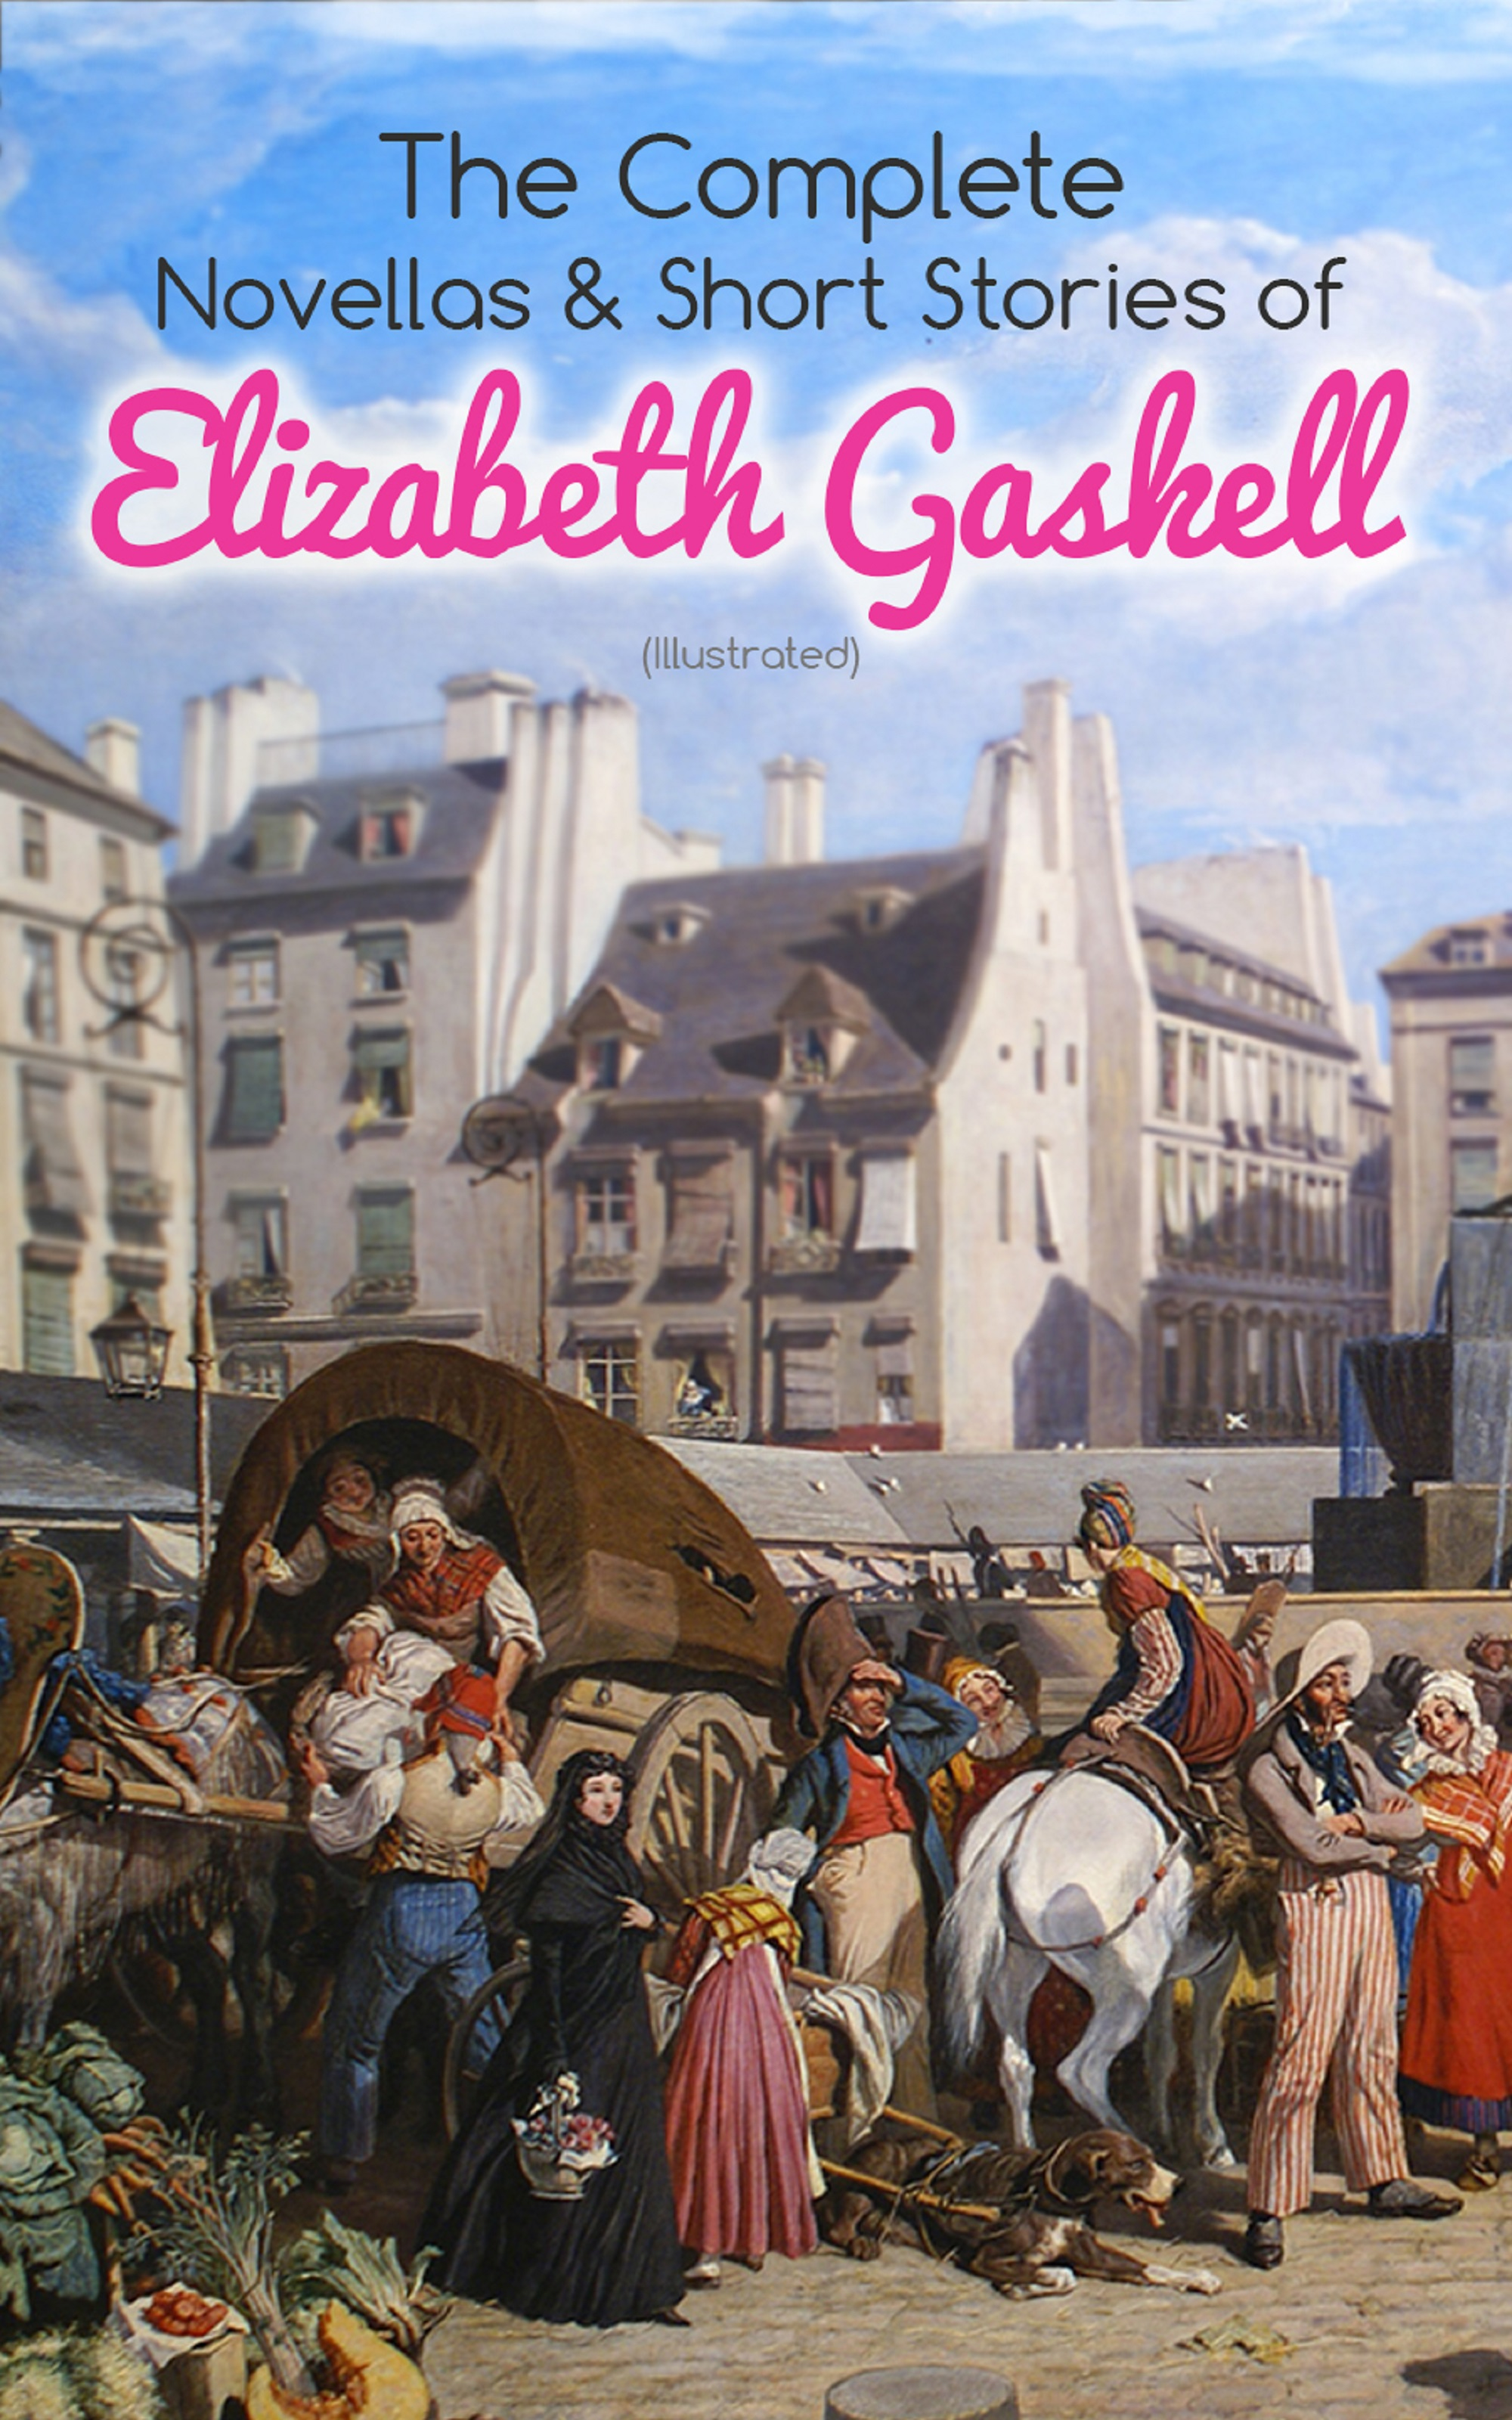 Elizabeth Gaskell The Complete Novellas & Short Stories of Elizabeth Gaskell (Illustrated) jill nelson elizabeth legacy of lies